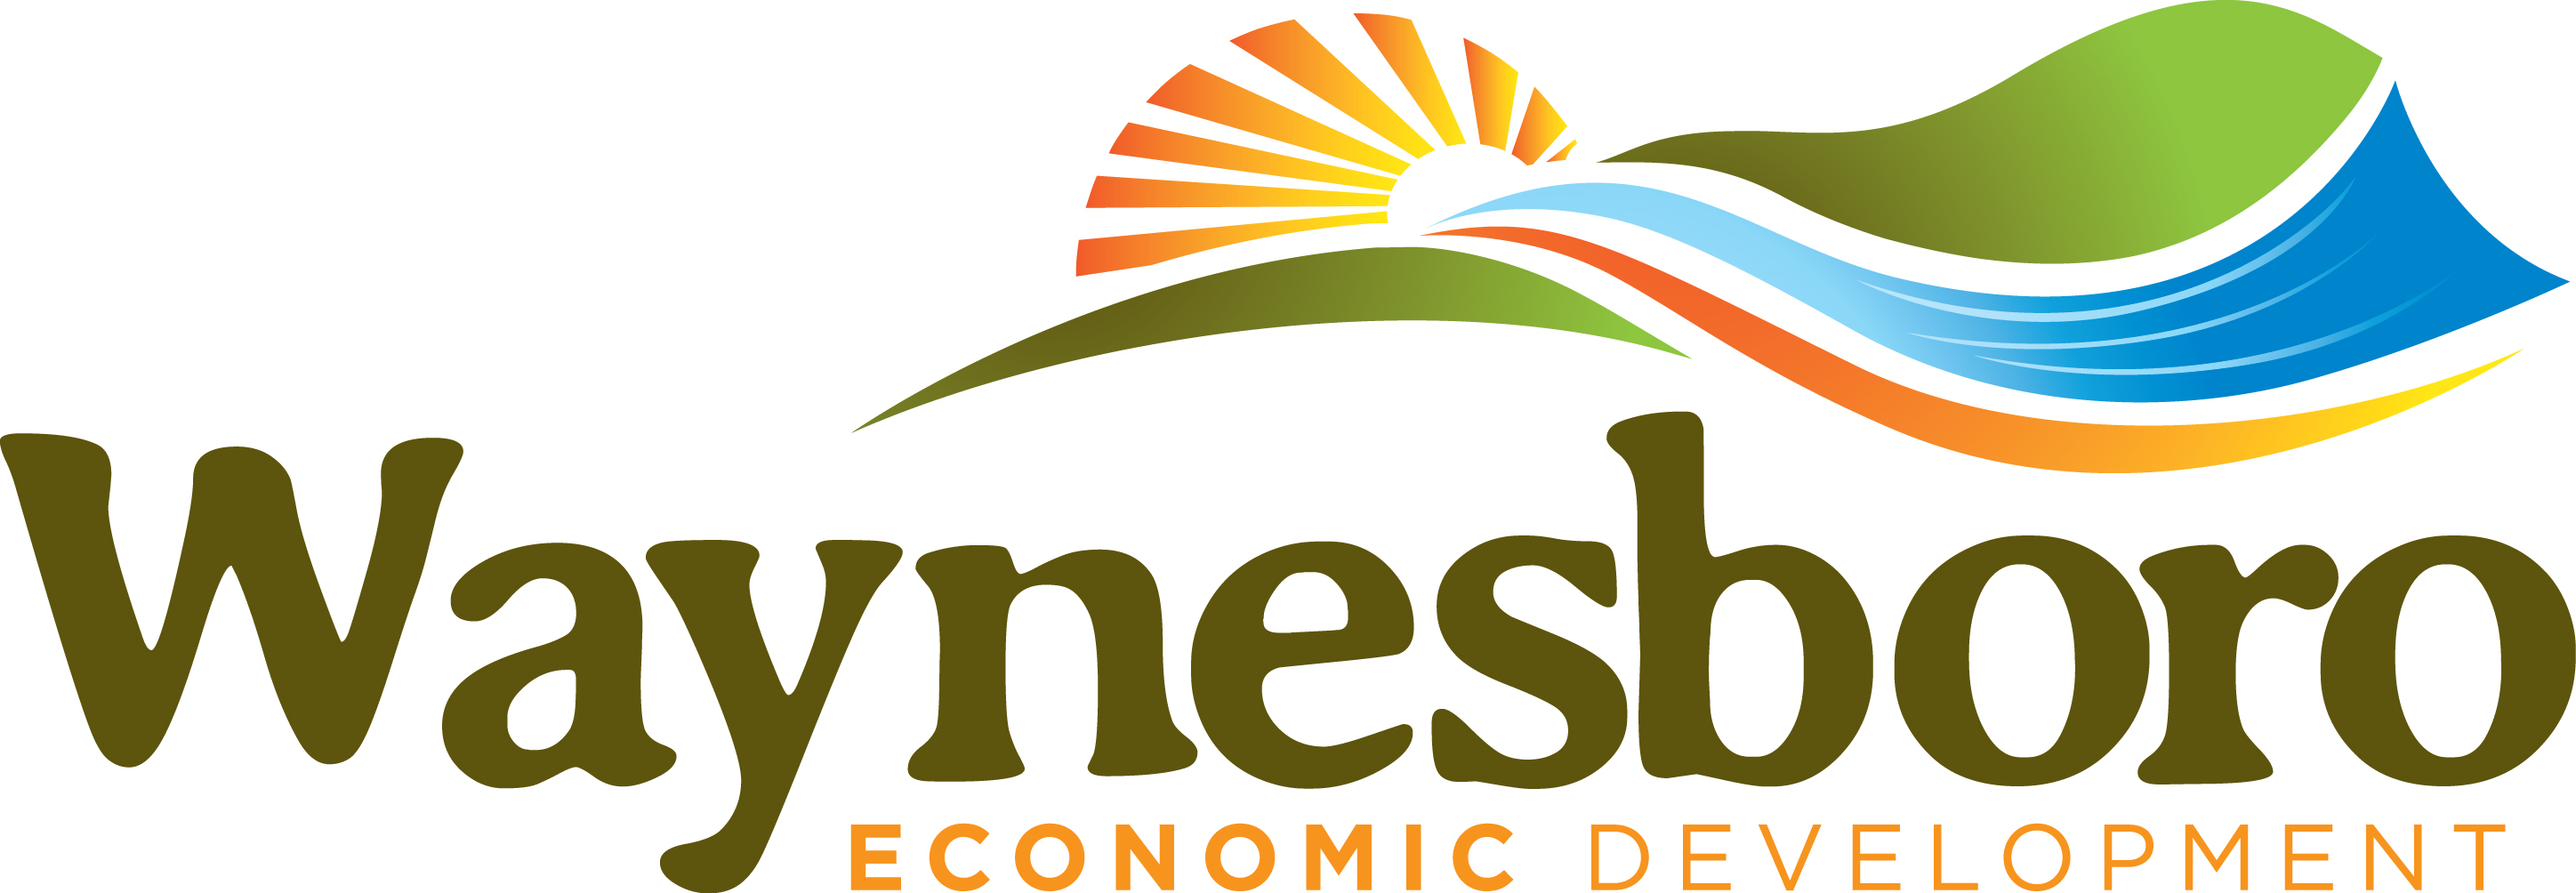 Waynesboro Economic Development Authority